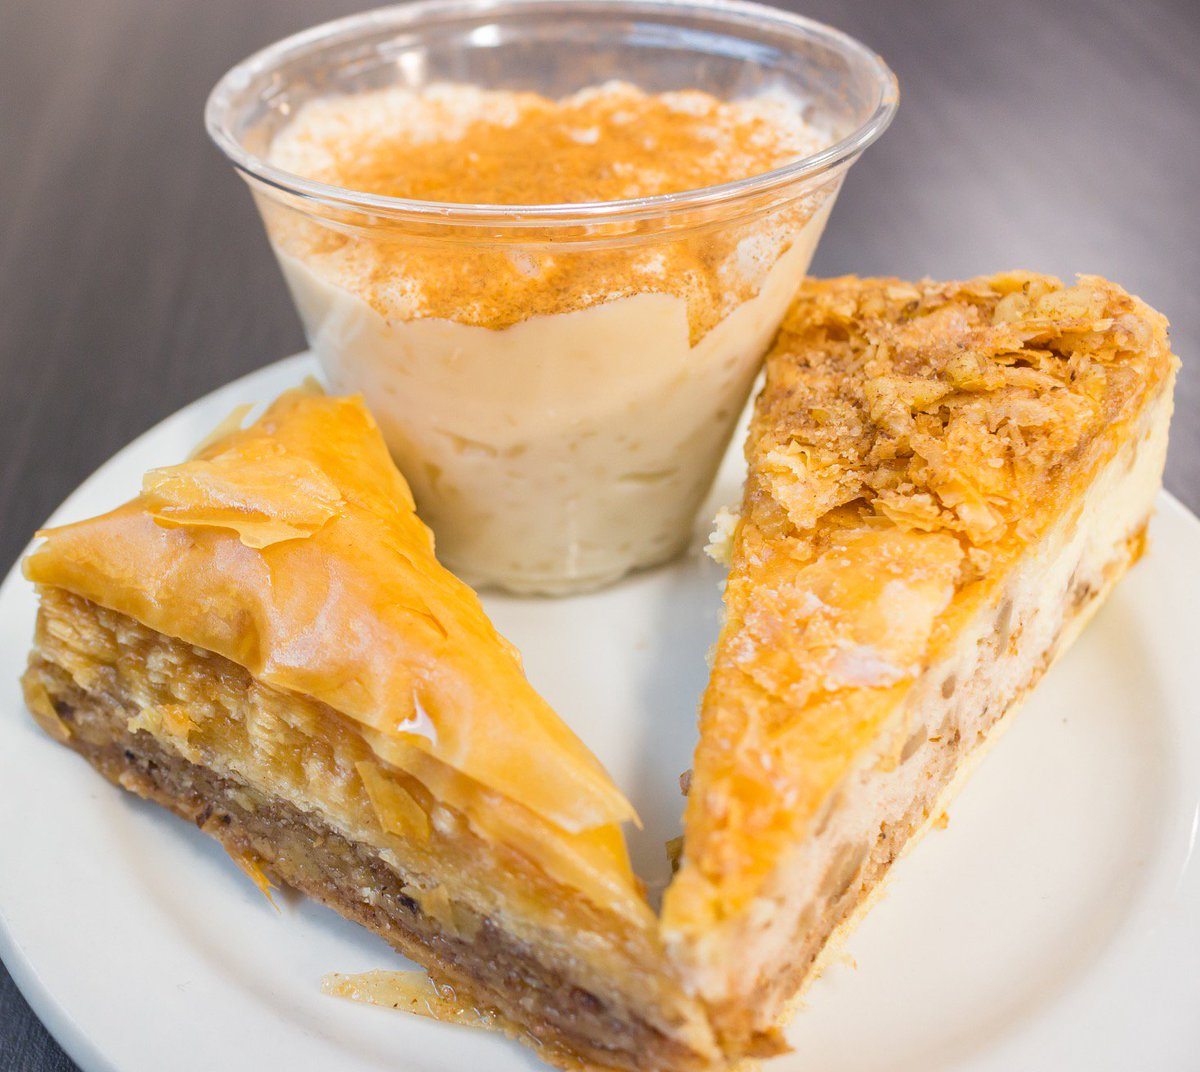 The Simple Greek On Twitter It S National Dessert Day Indulge In Yiayia S Greek Trifecta Rizogalo Baklava Baklava Cheesecake Nationaldessertday Thesimplegreek Https T Co E56mlr7fq6